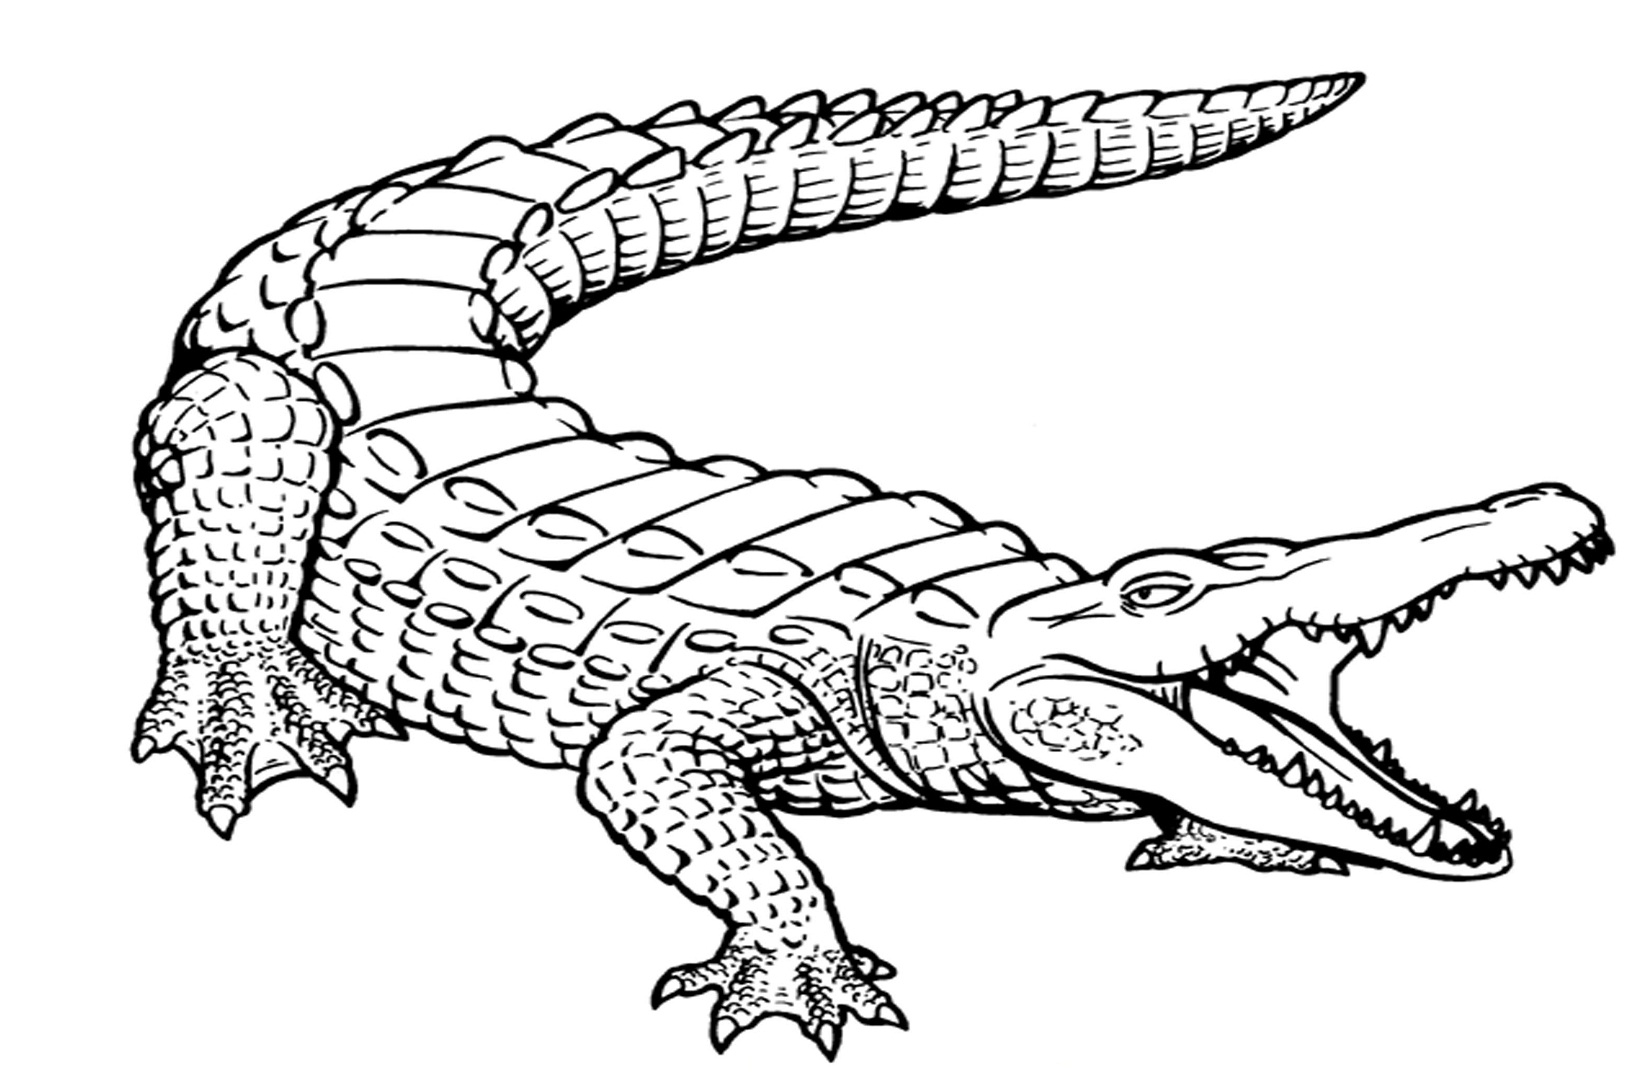 Coloring pages starfish intermediate - Image From Http Www Wildlife Animals Com Coloring Pages Cheetah 1 Gif Third Grade Aminals Pinterest